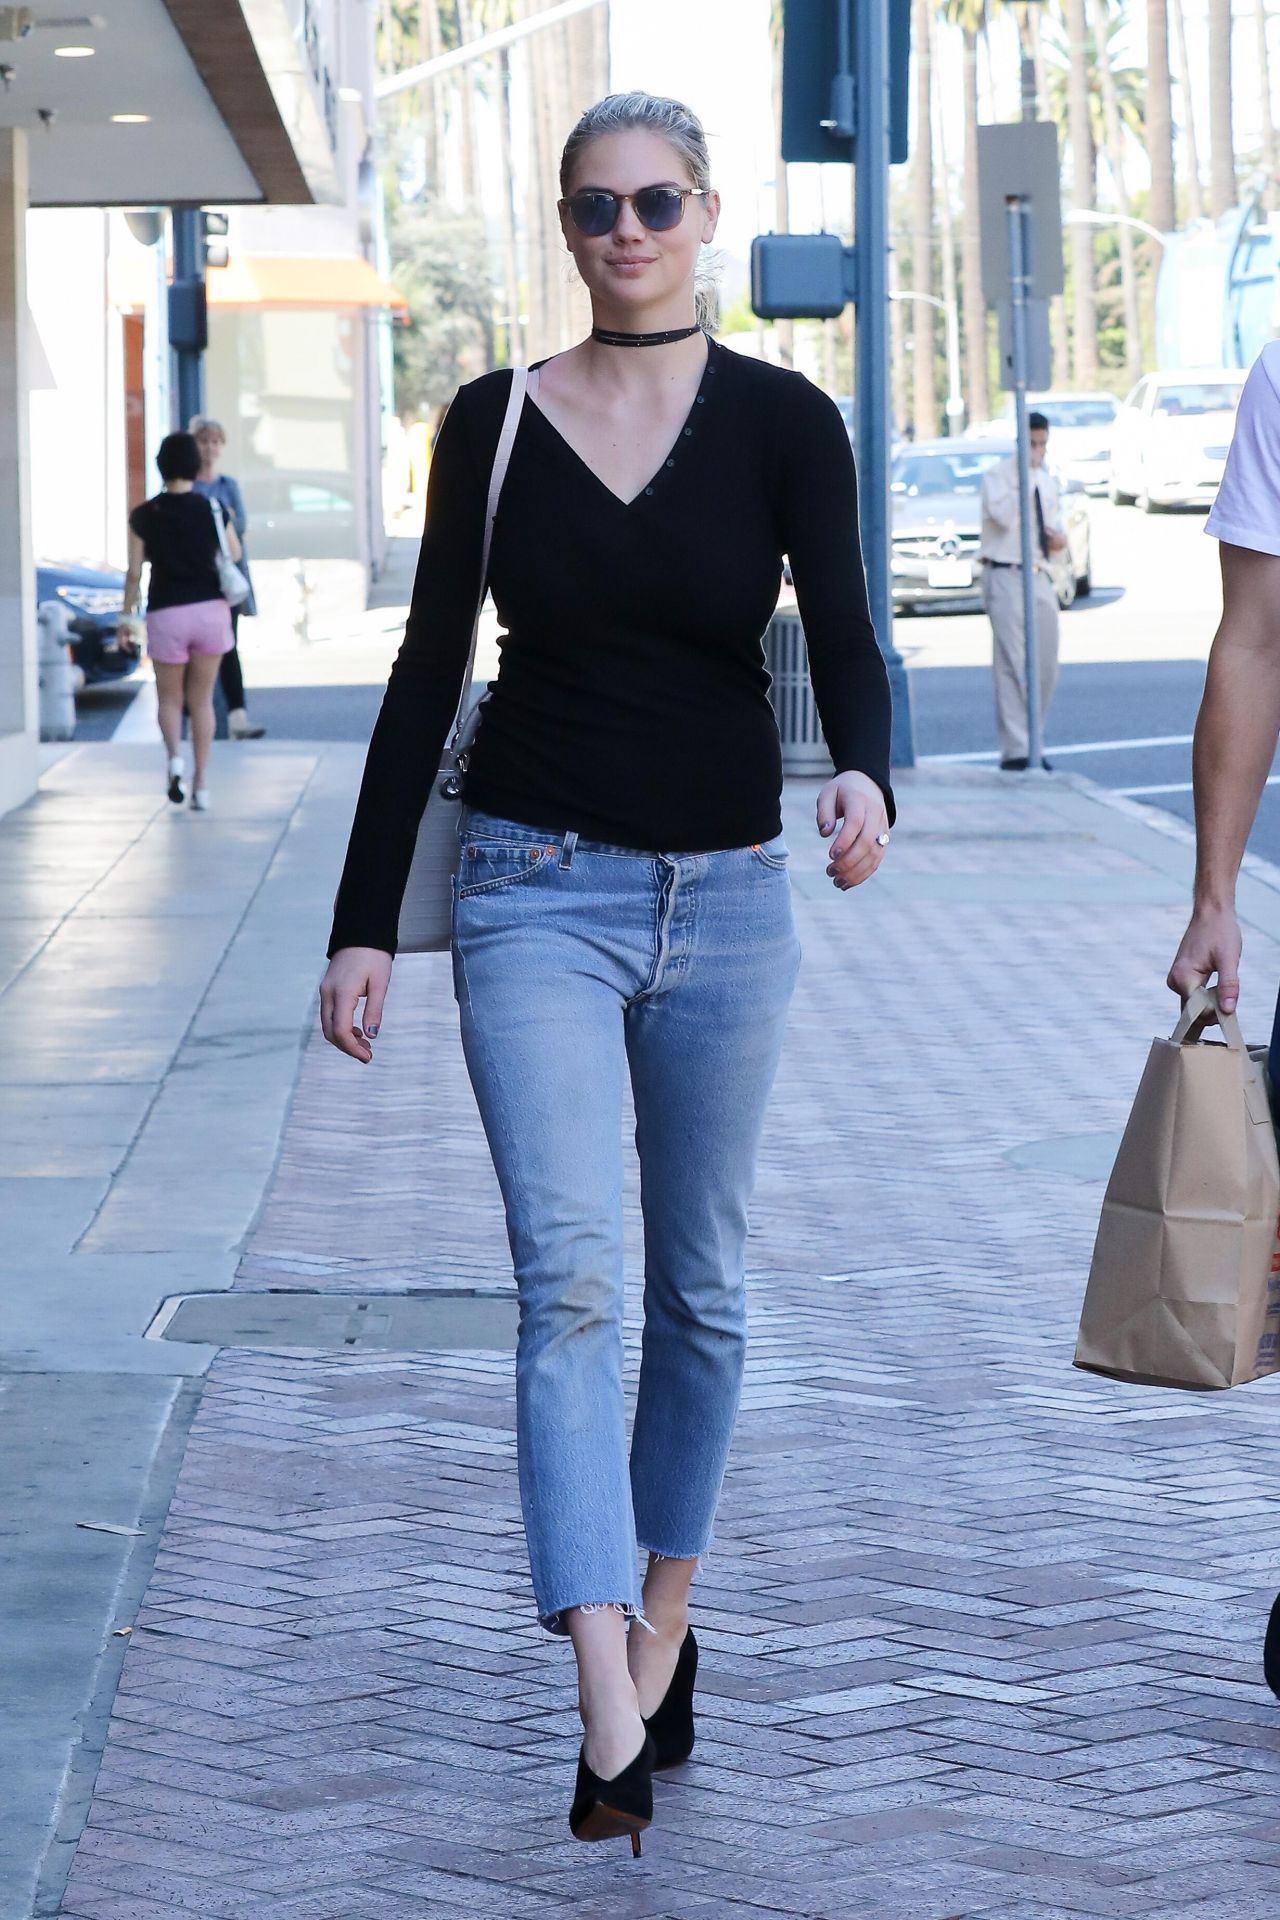 Inez Busty Cheap kate-upton-casual-style-spotted-at-a-rite-aid-pharmacy-in-beverly